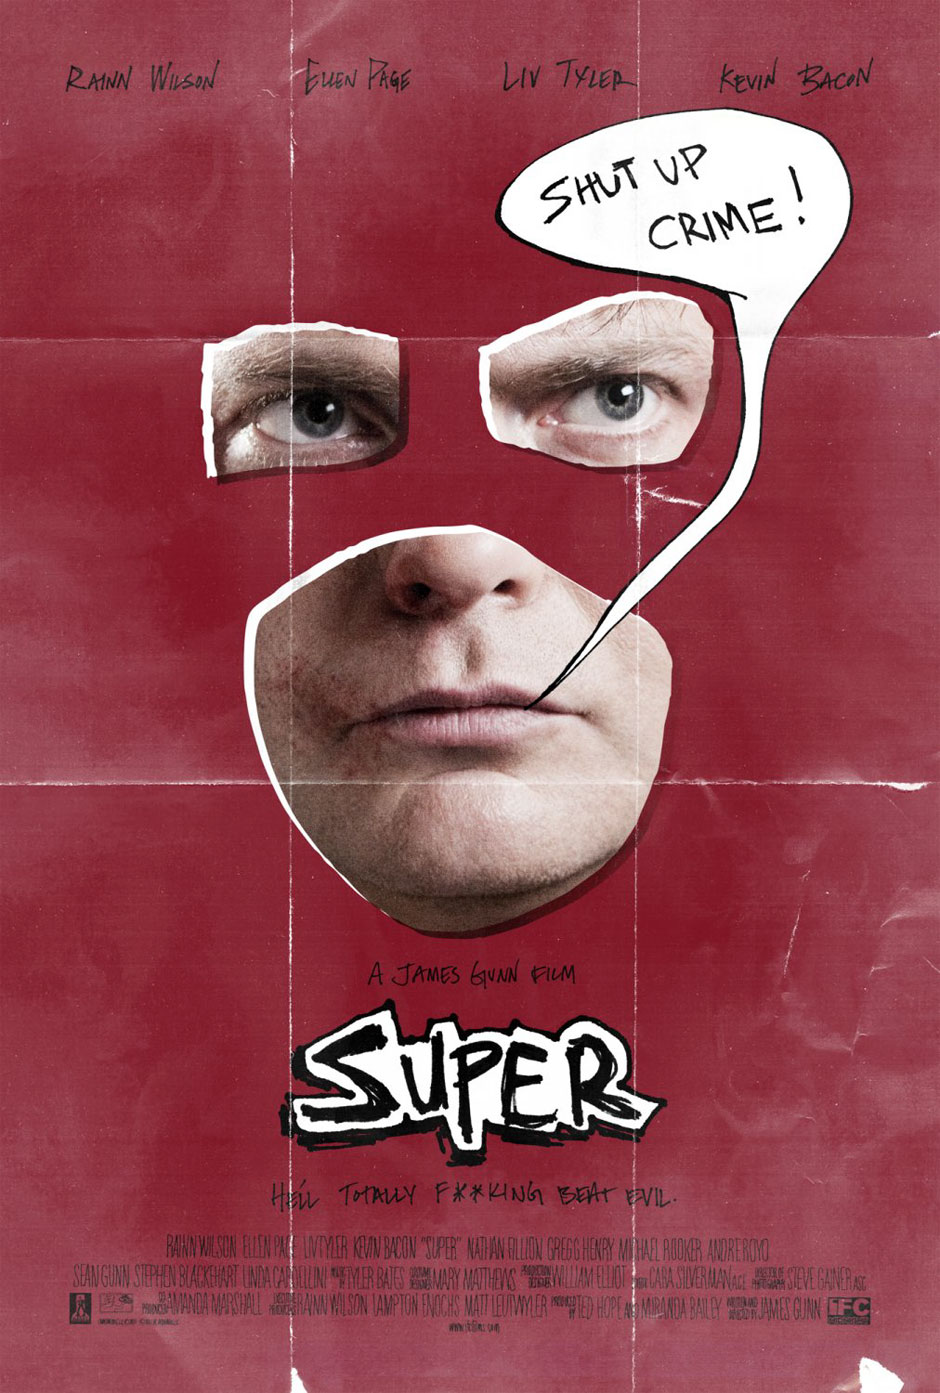 super movie poster Additional Detail Images. All